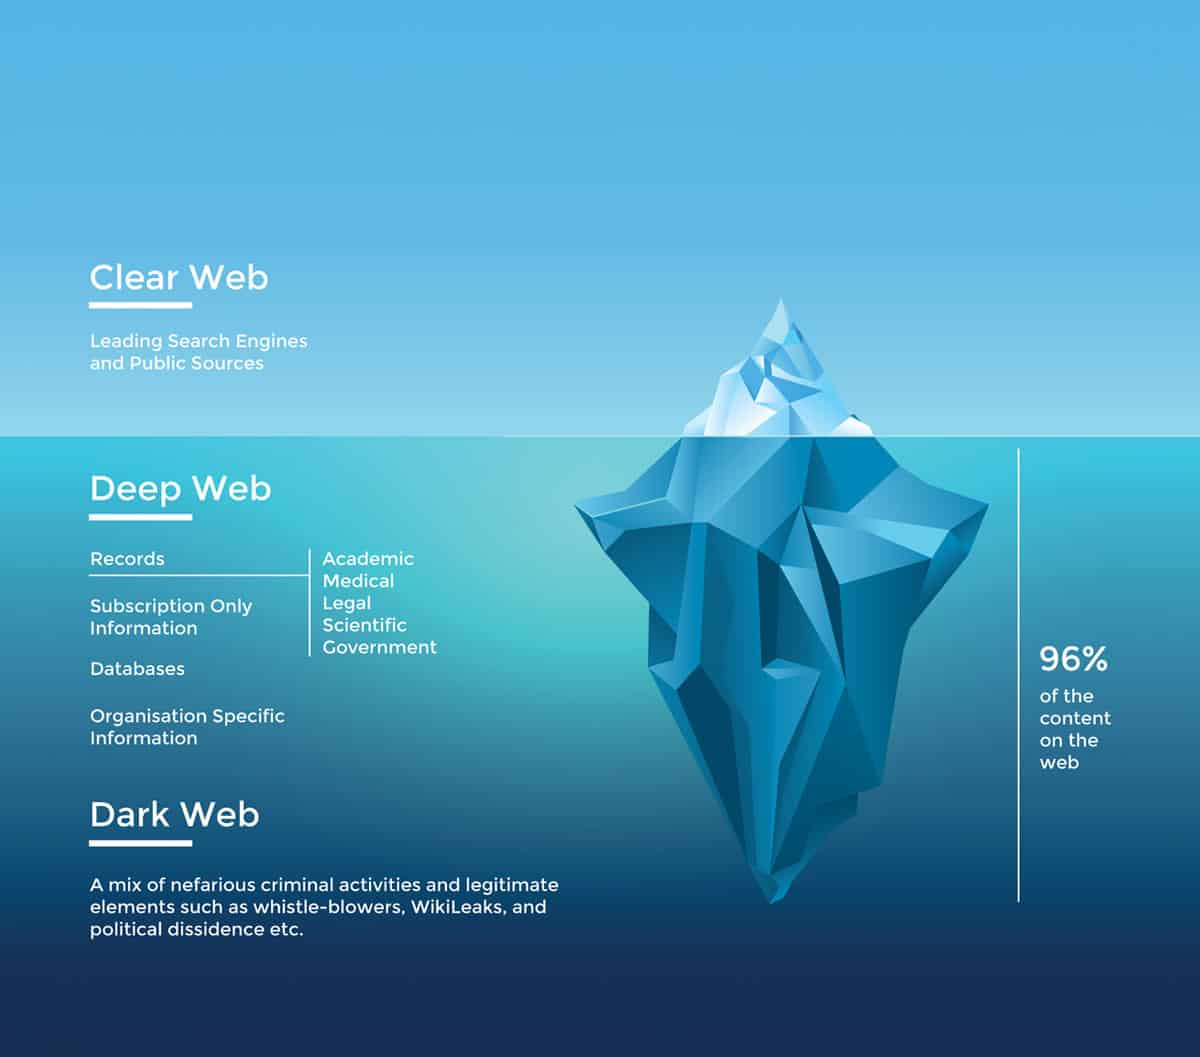 ice berg depicting the difference between dark web and clear web